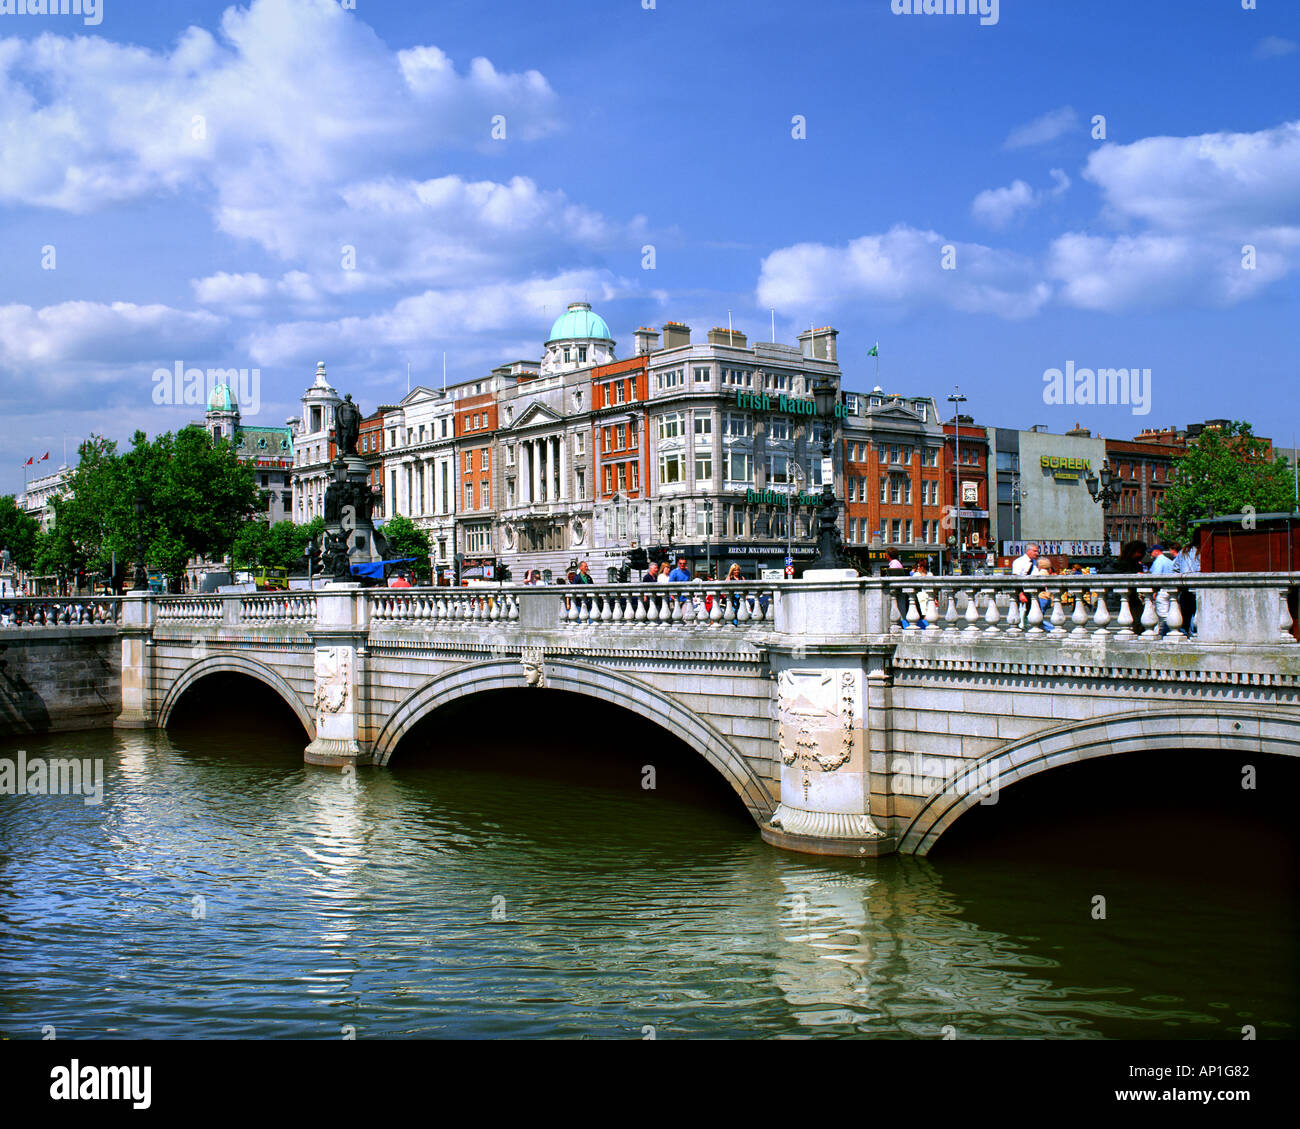 IE - DUBLIN: O'Connell Bridge - Stock Image